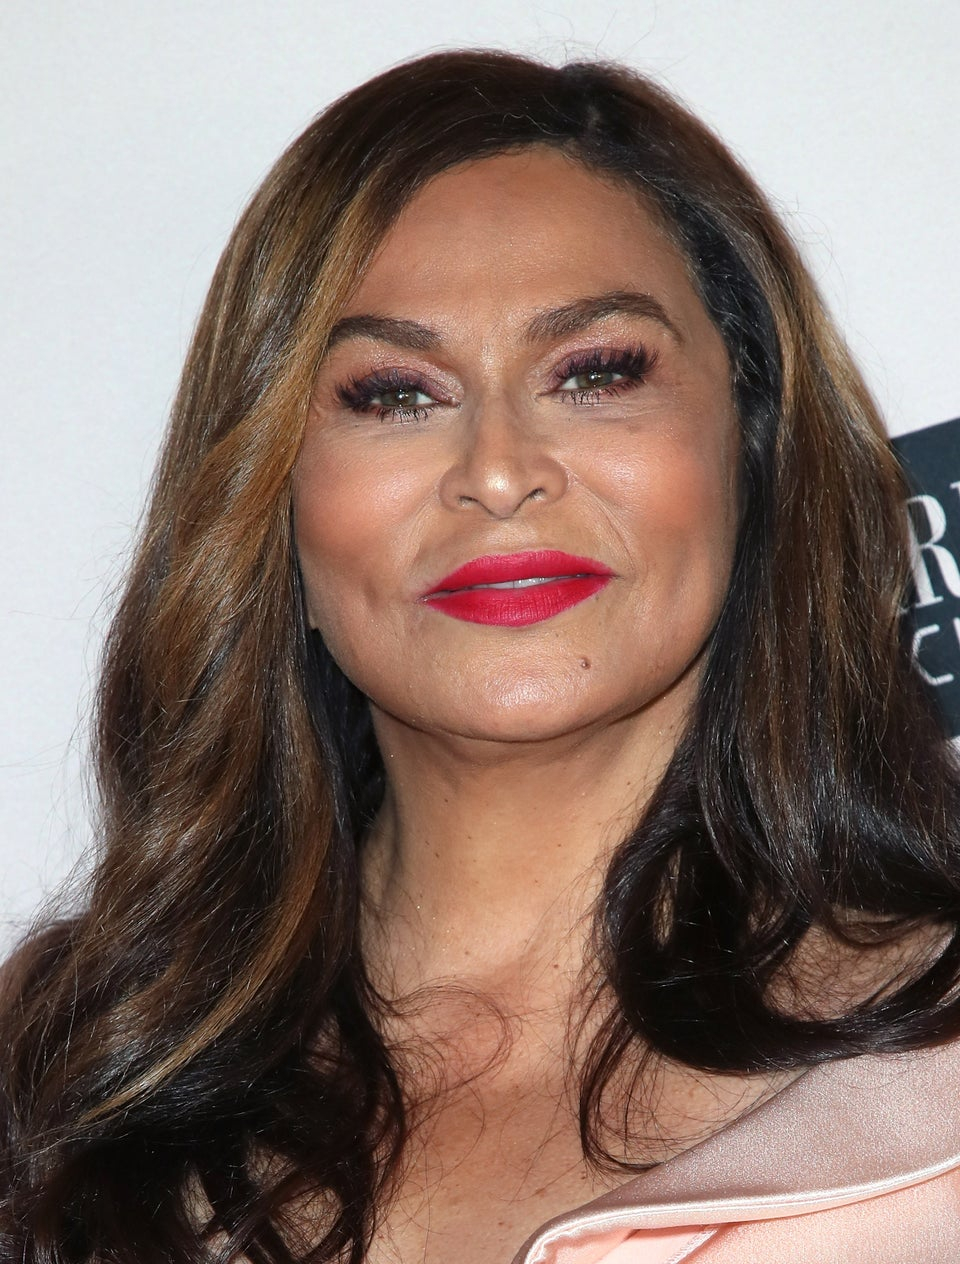 Glowing Grandma! Beyonce's Mom Tina Is 'Having a Ball' in N.Y.C. After Twins' Birth